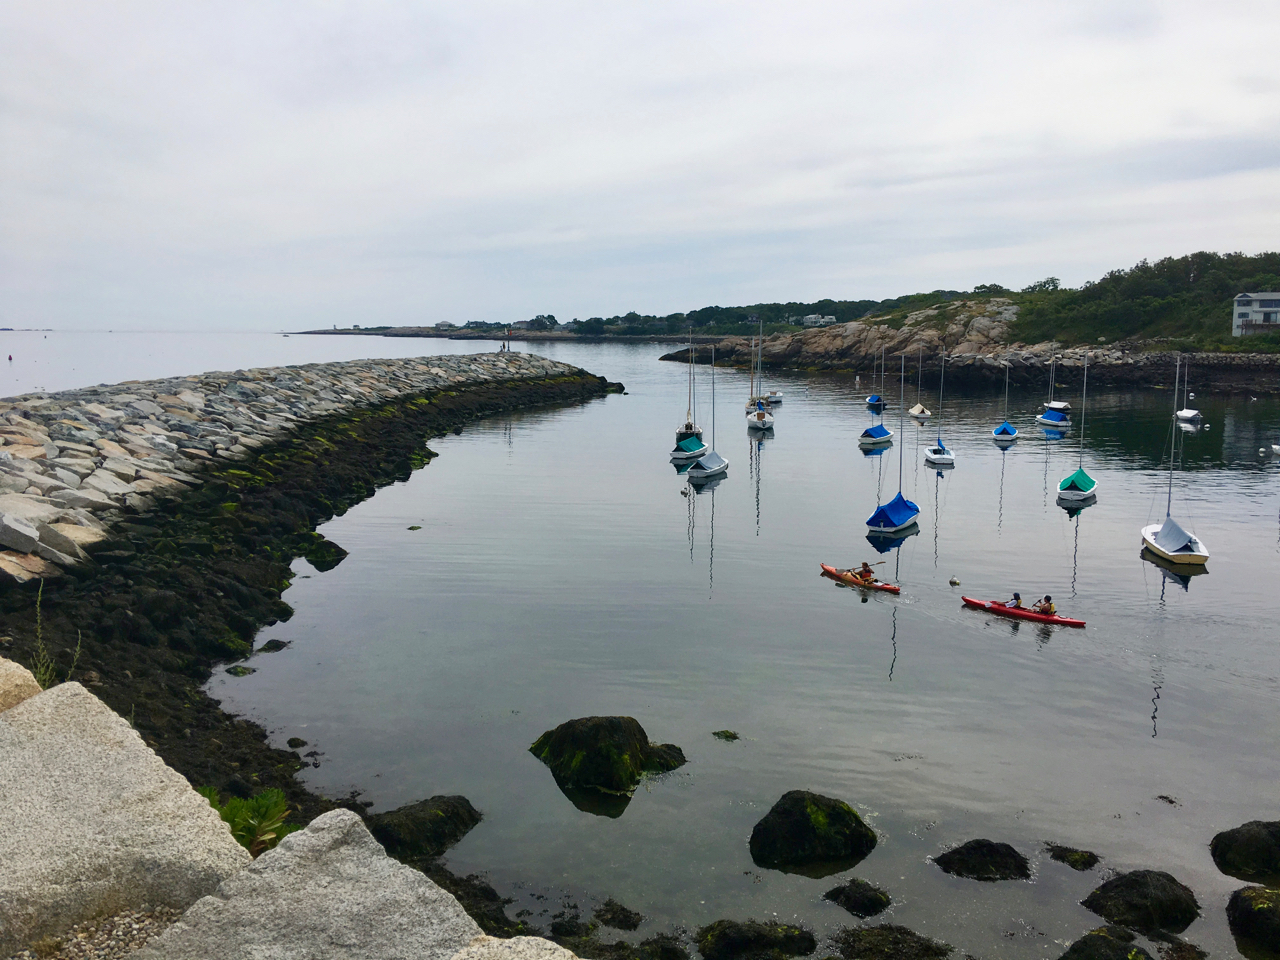 Sea kayaking and whale watching are popular activities when visiting Rockport, Mass. on Cape Ann.